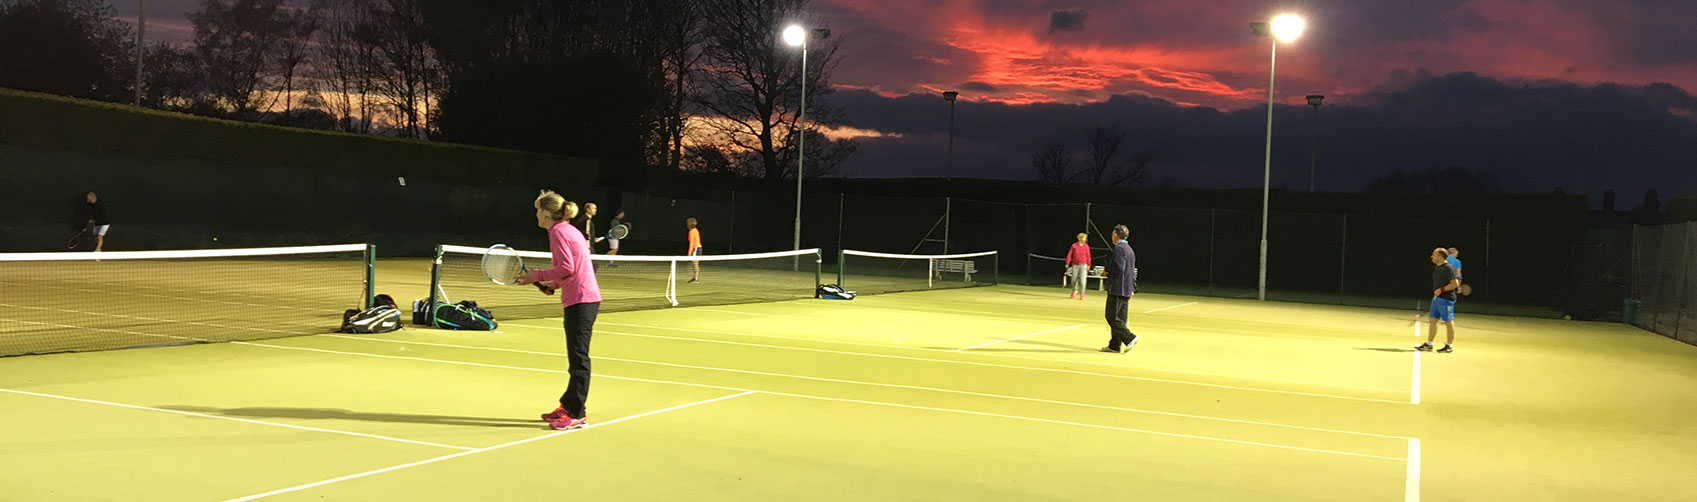 York Tennis Club Court Availability